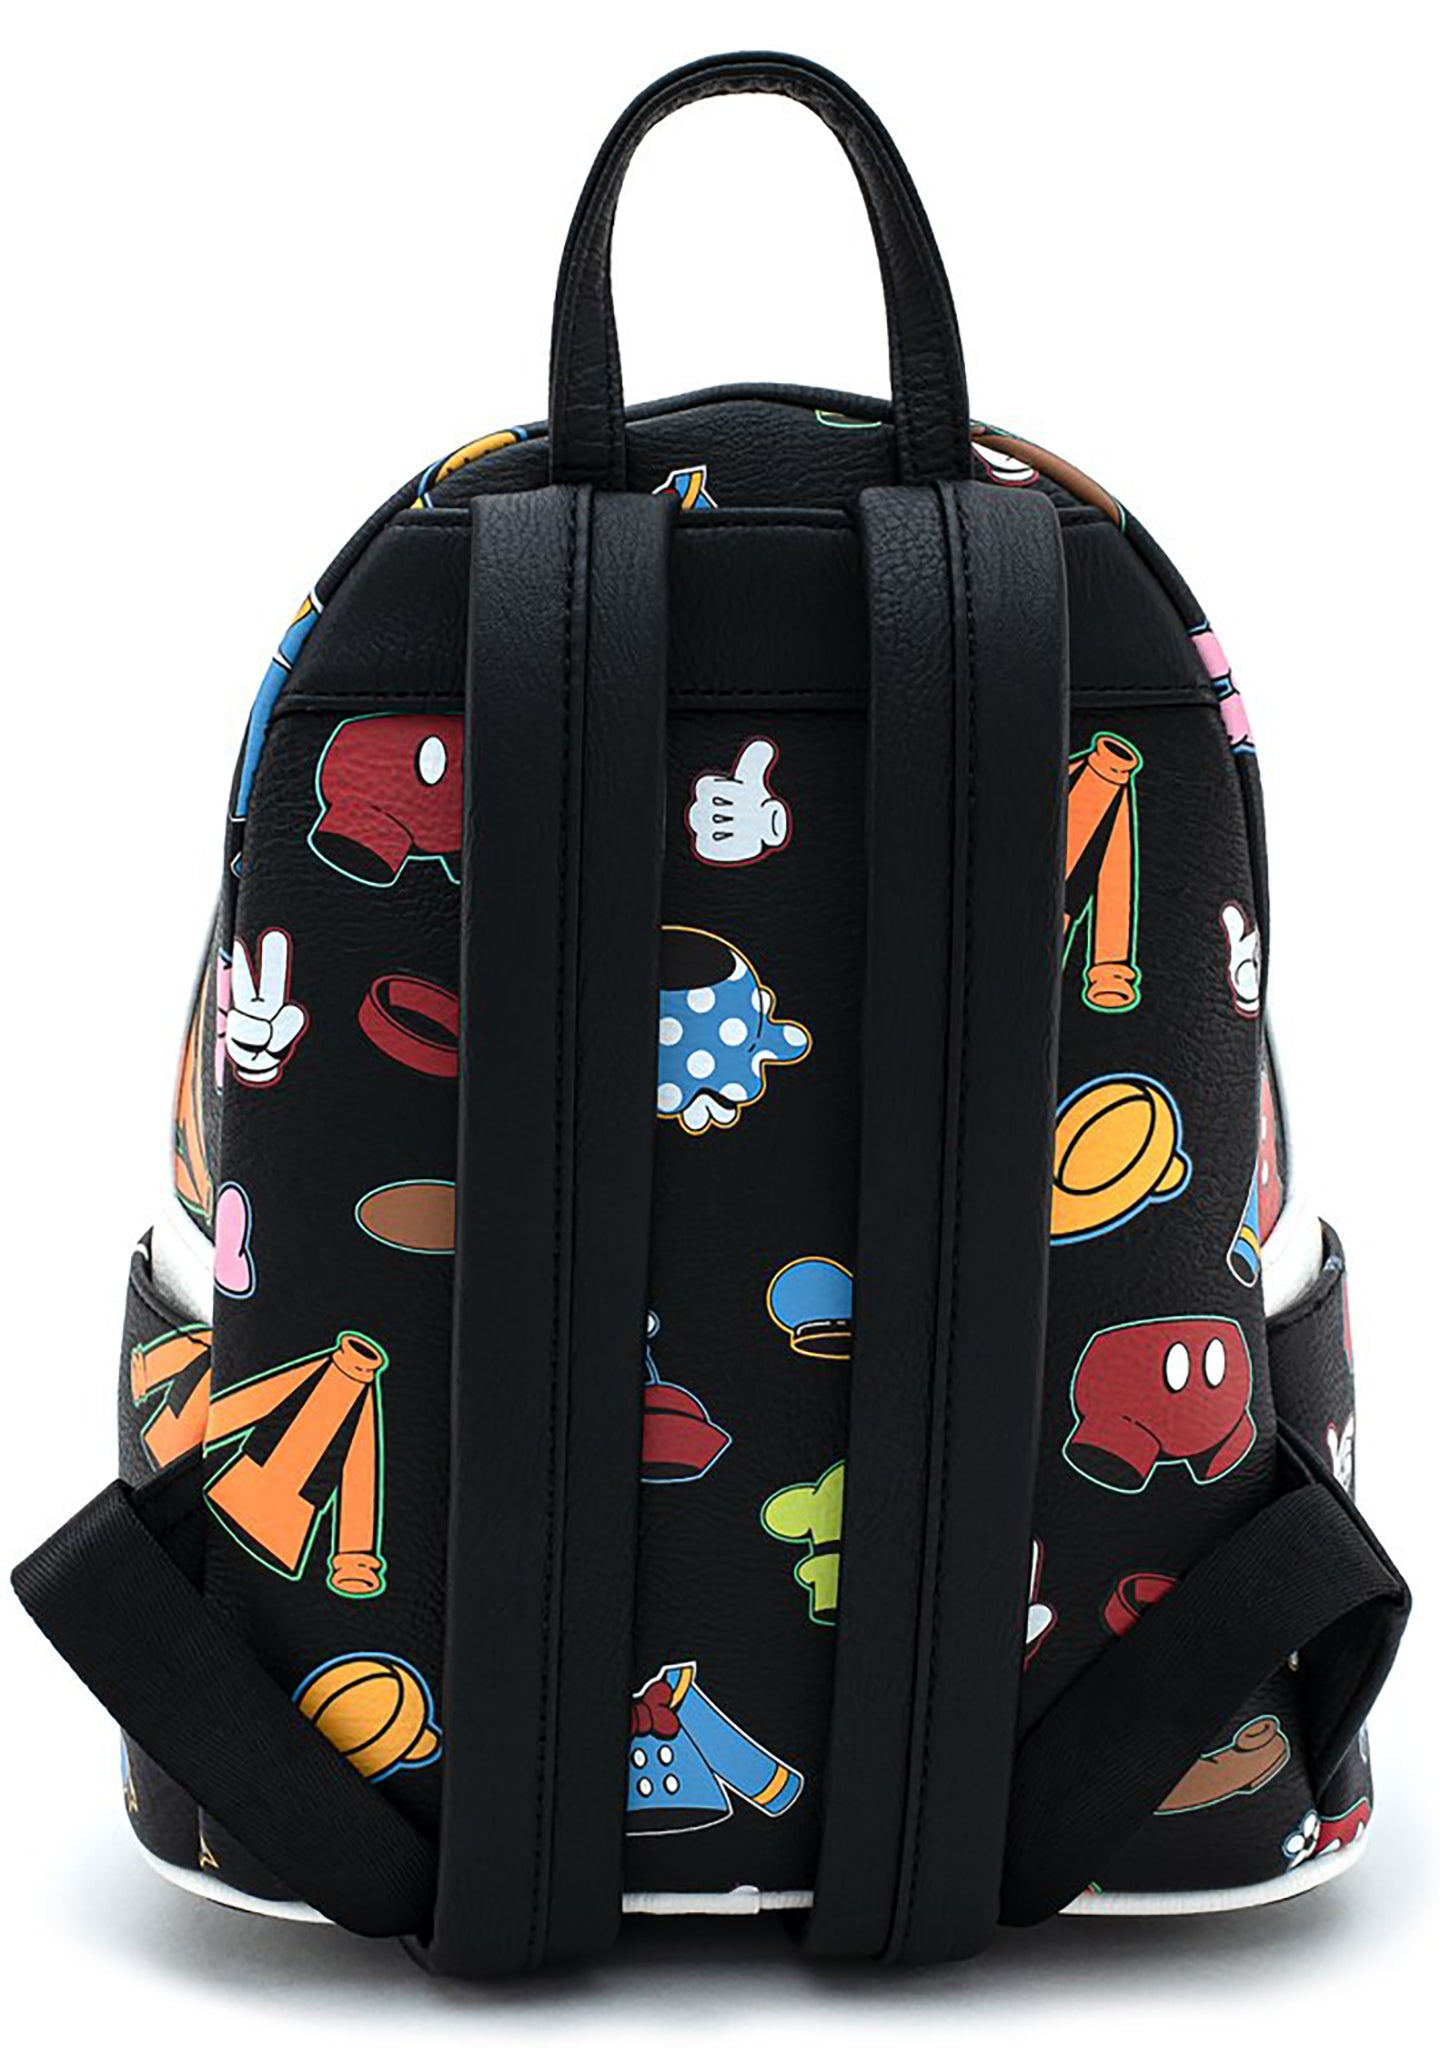 X Disney Sensational 6 Outfits AOP Mini Backpack